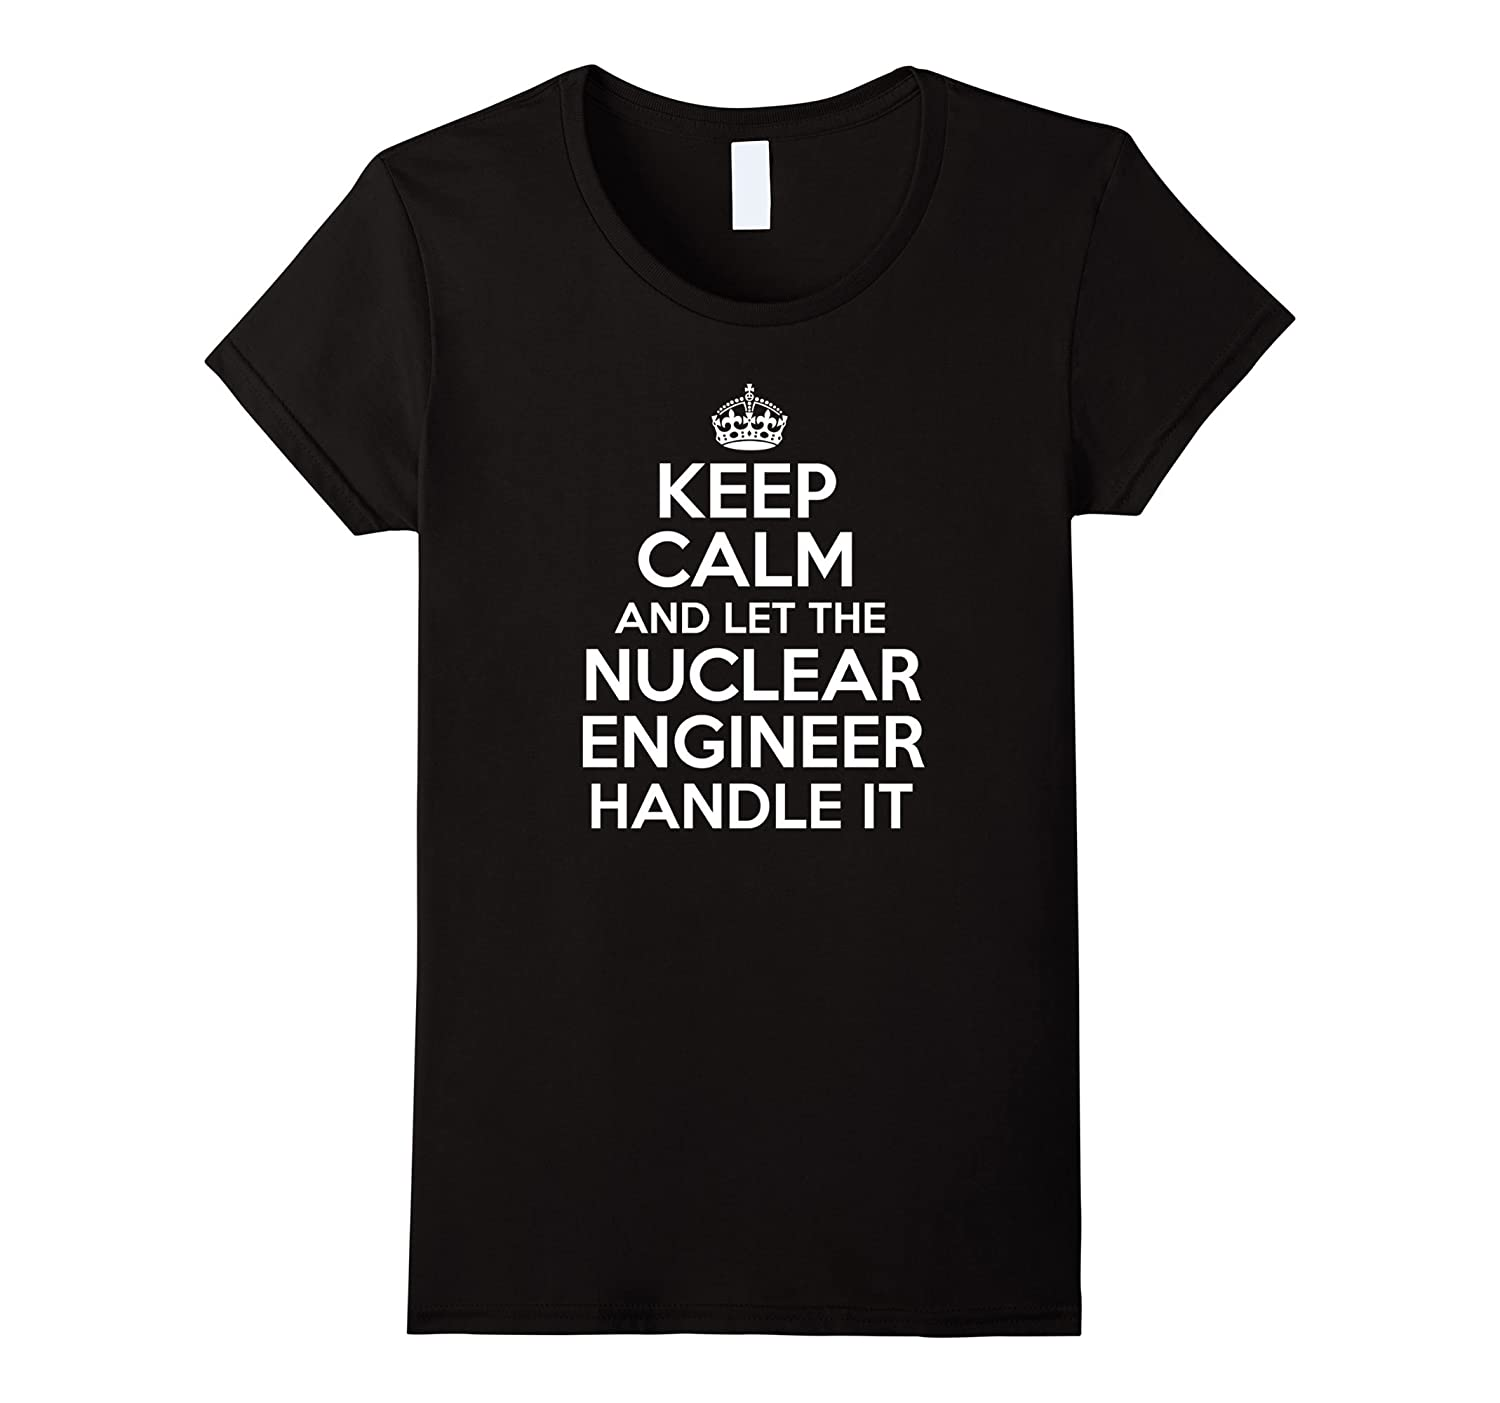 Keep calm and let the NUCLEAR ENGINEER handle it